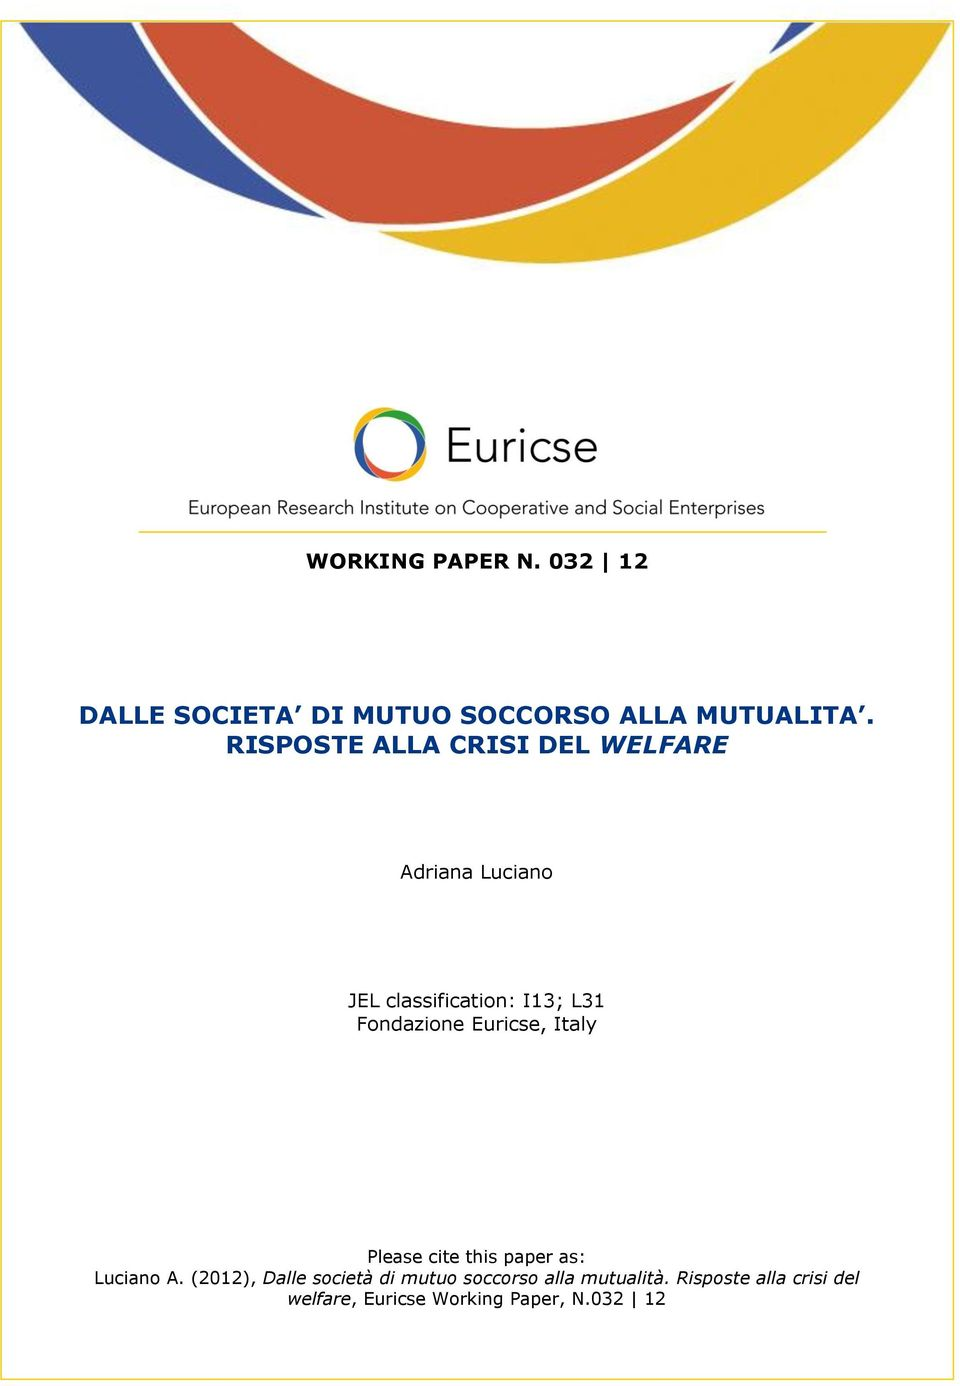 Fondazione Euricse, Italy Please cite this paper as: Luciano A.